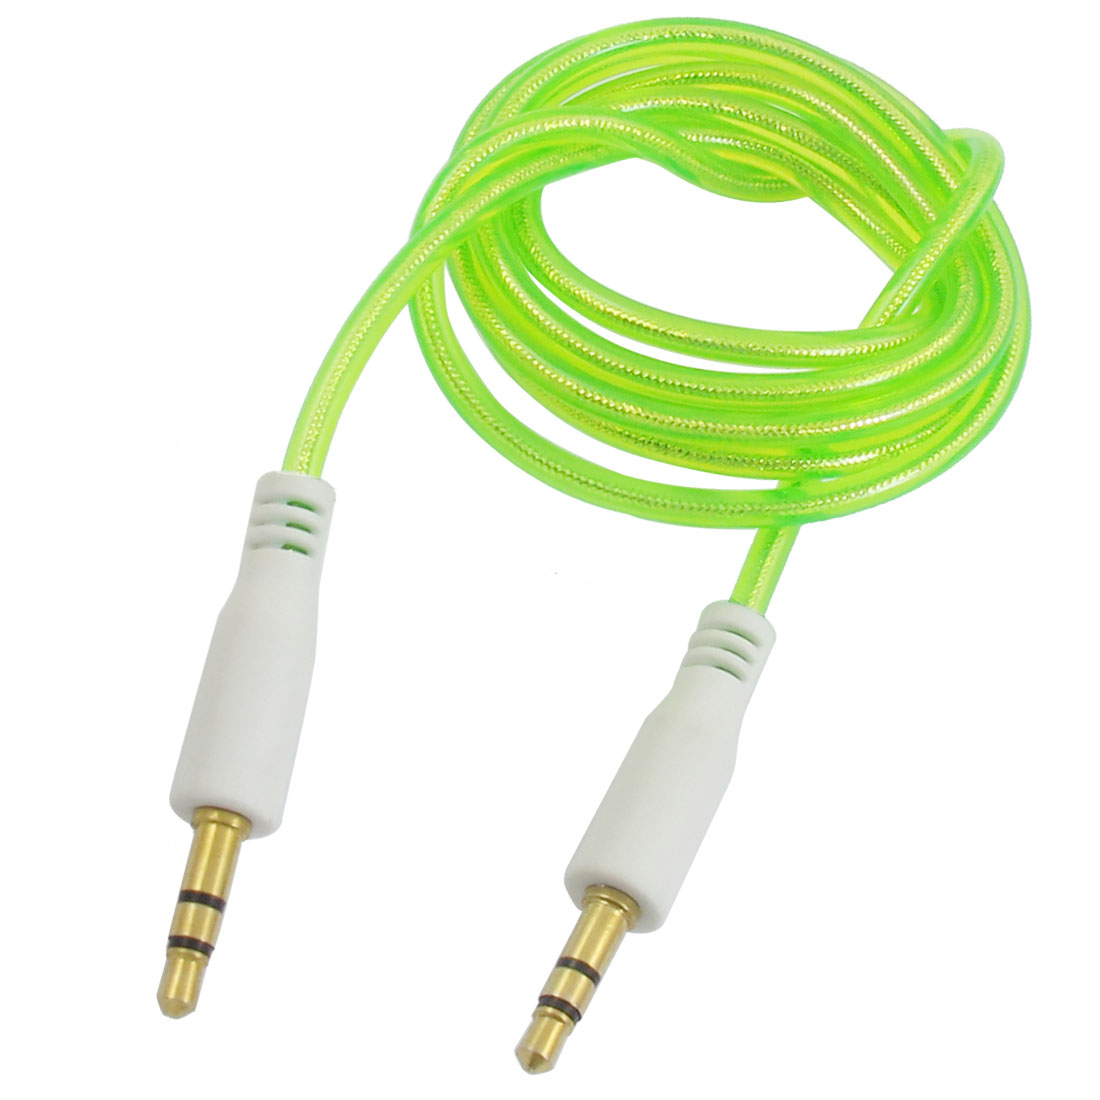 Green 3.5mm Male to 3.5mm Male Plug Stereo Audio Extension Cable 1M